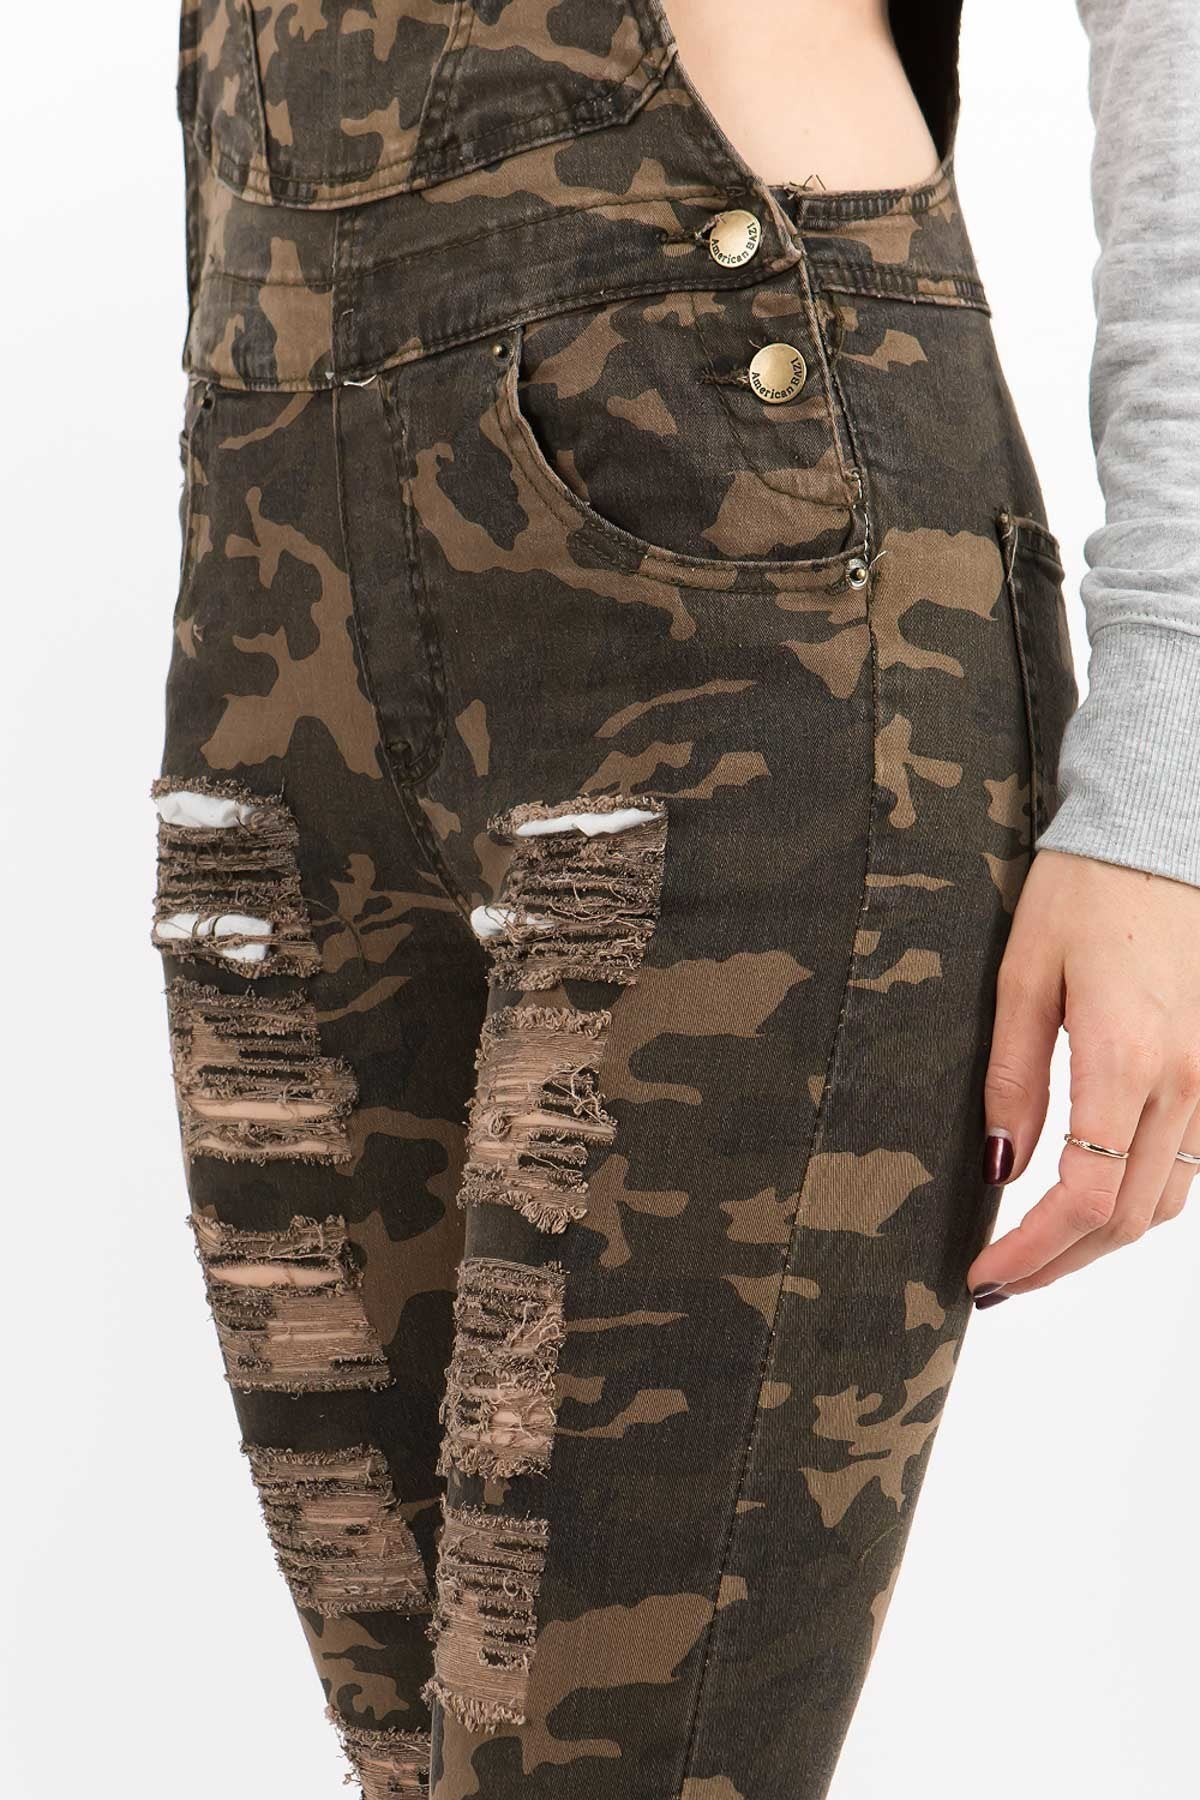 Camo Distressed Overall Bibs - jumpsuit